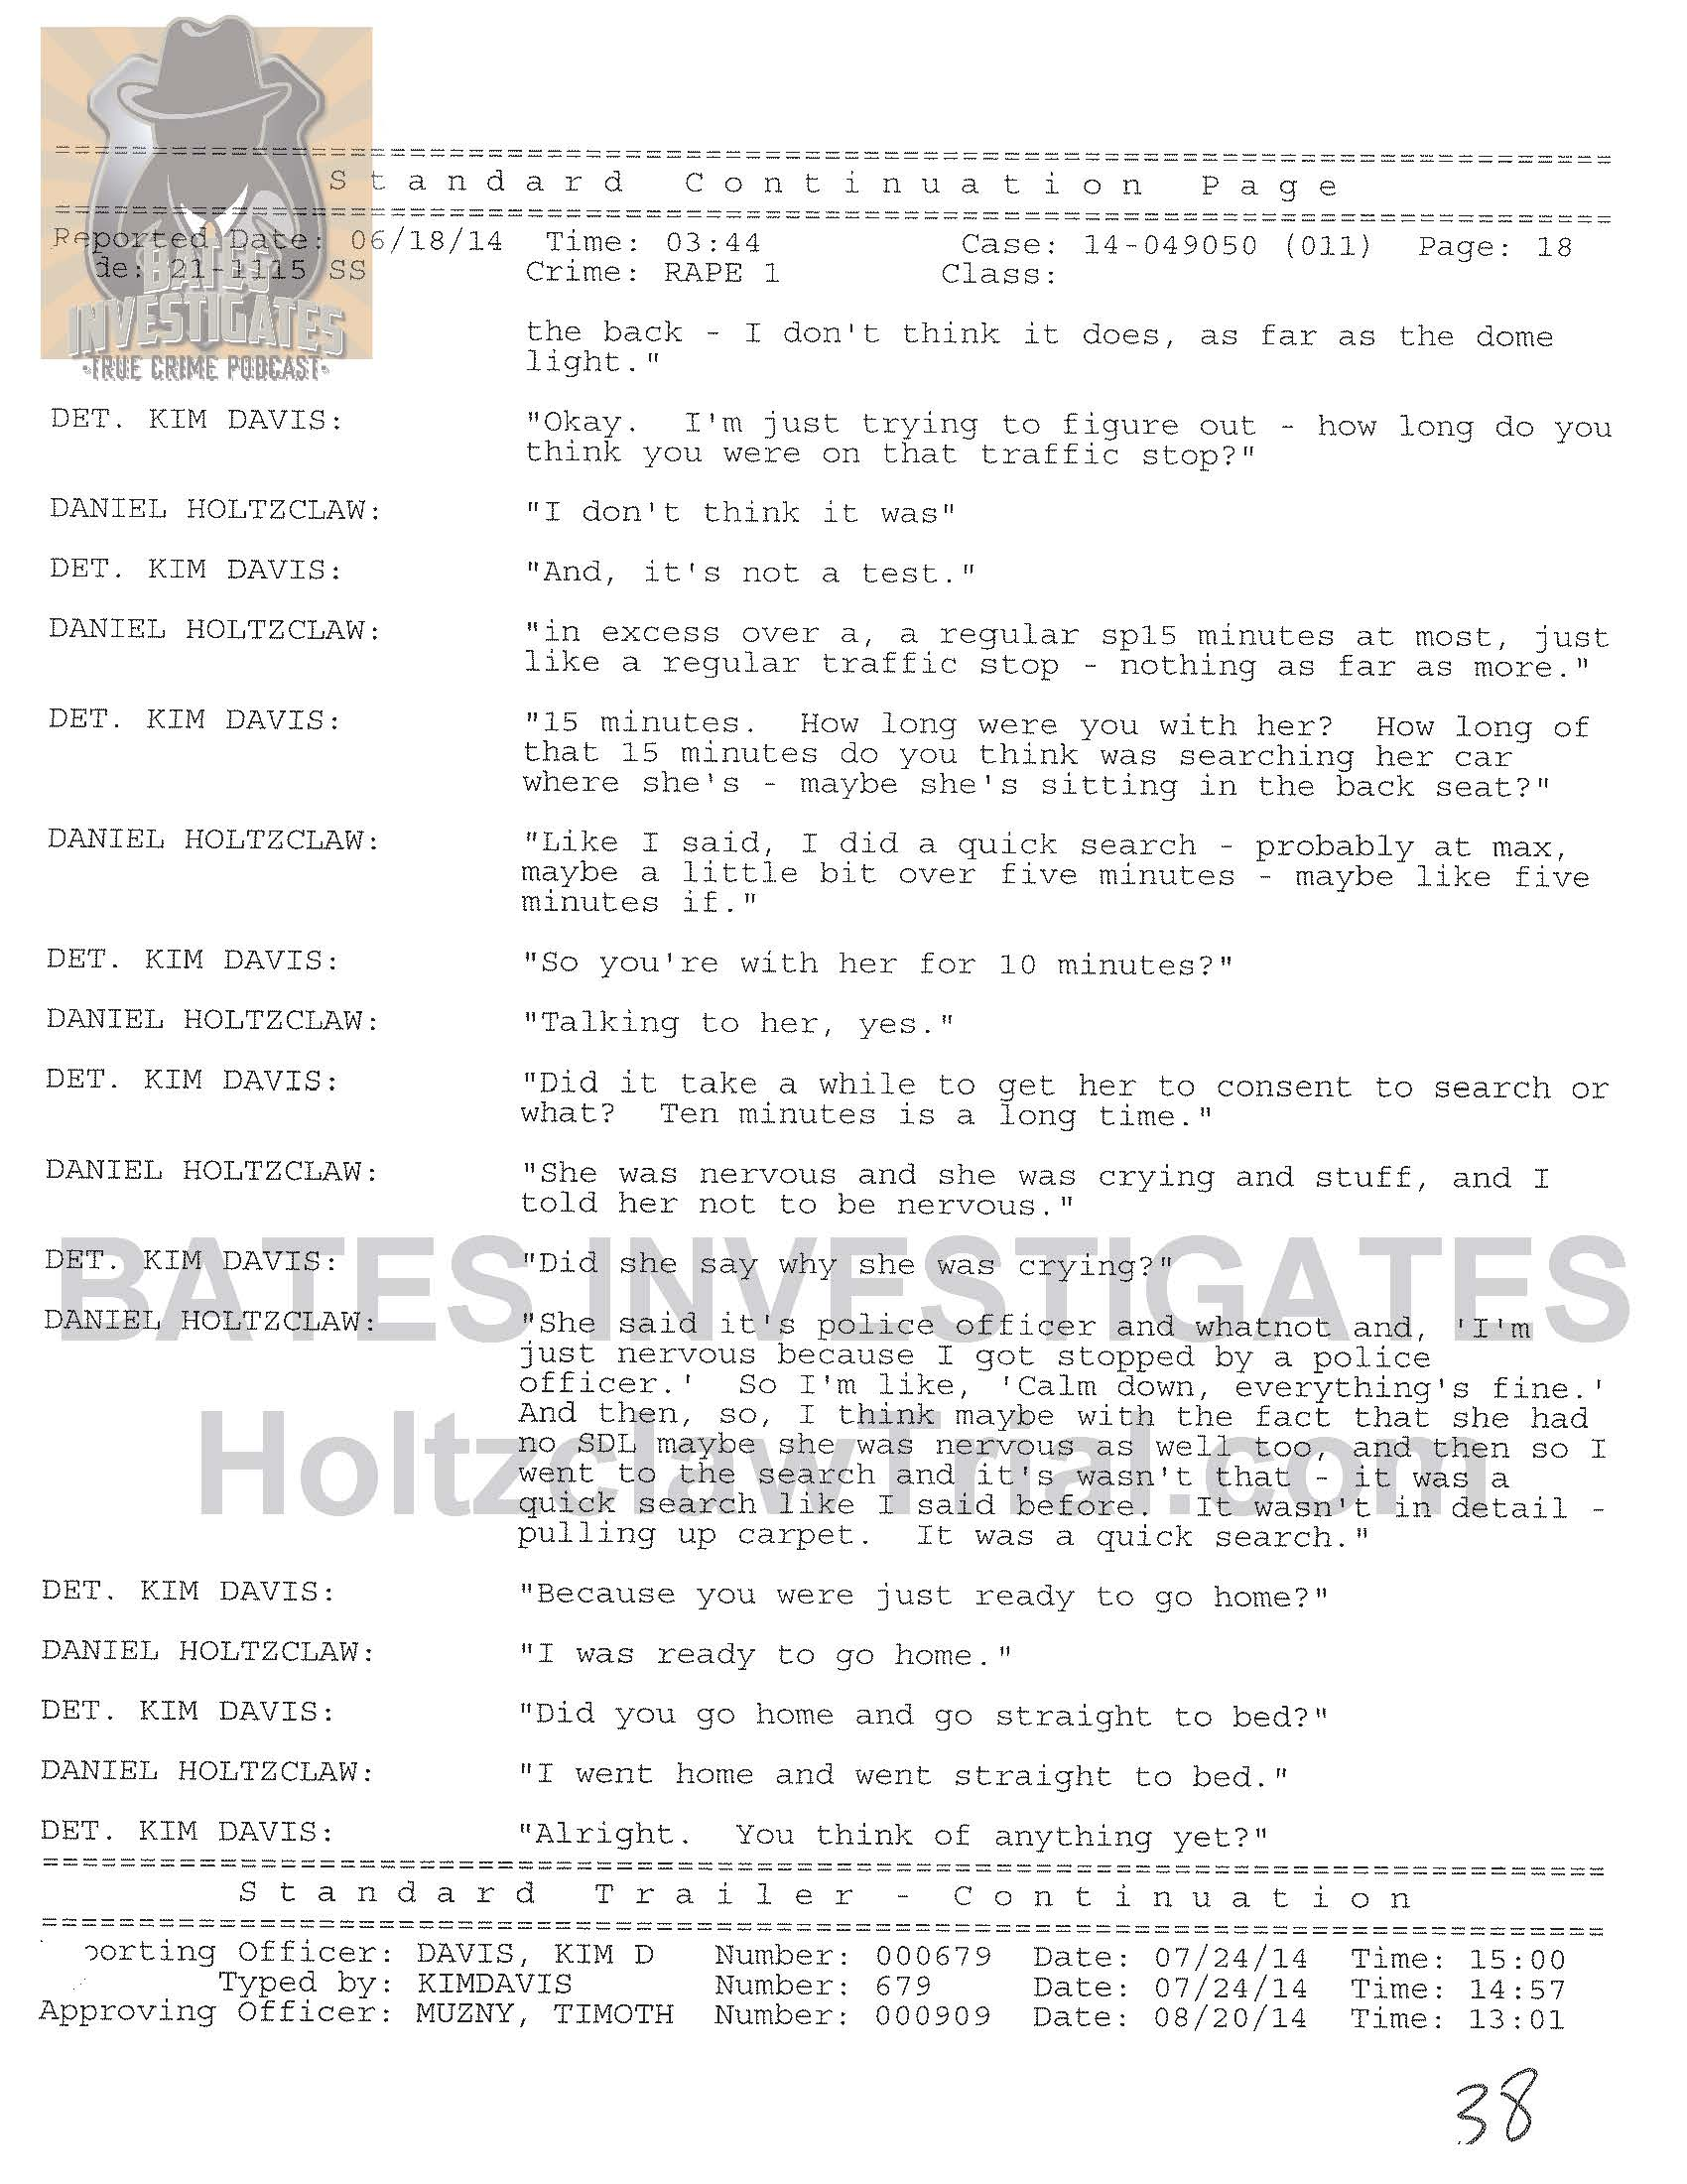 Holtzclaw Interrogation Transcript - Ep02 Redacted_Page_18.jpg